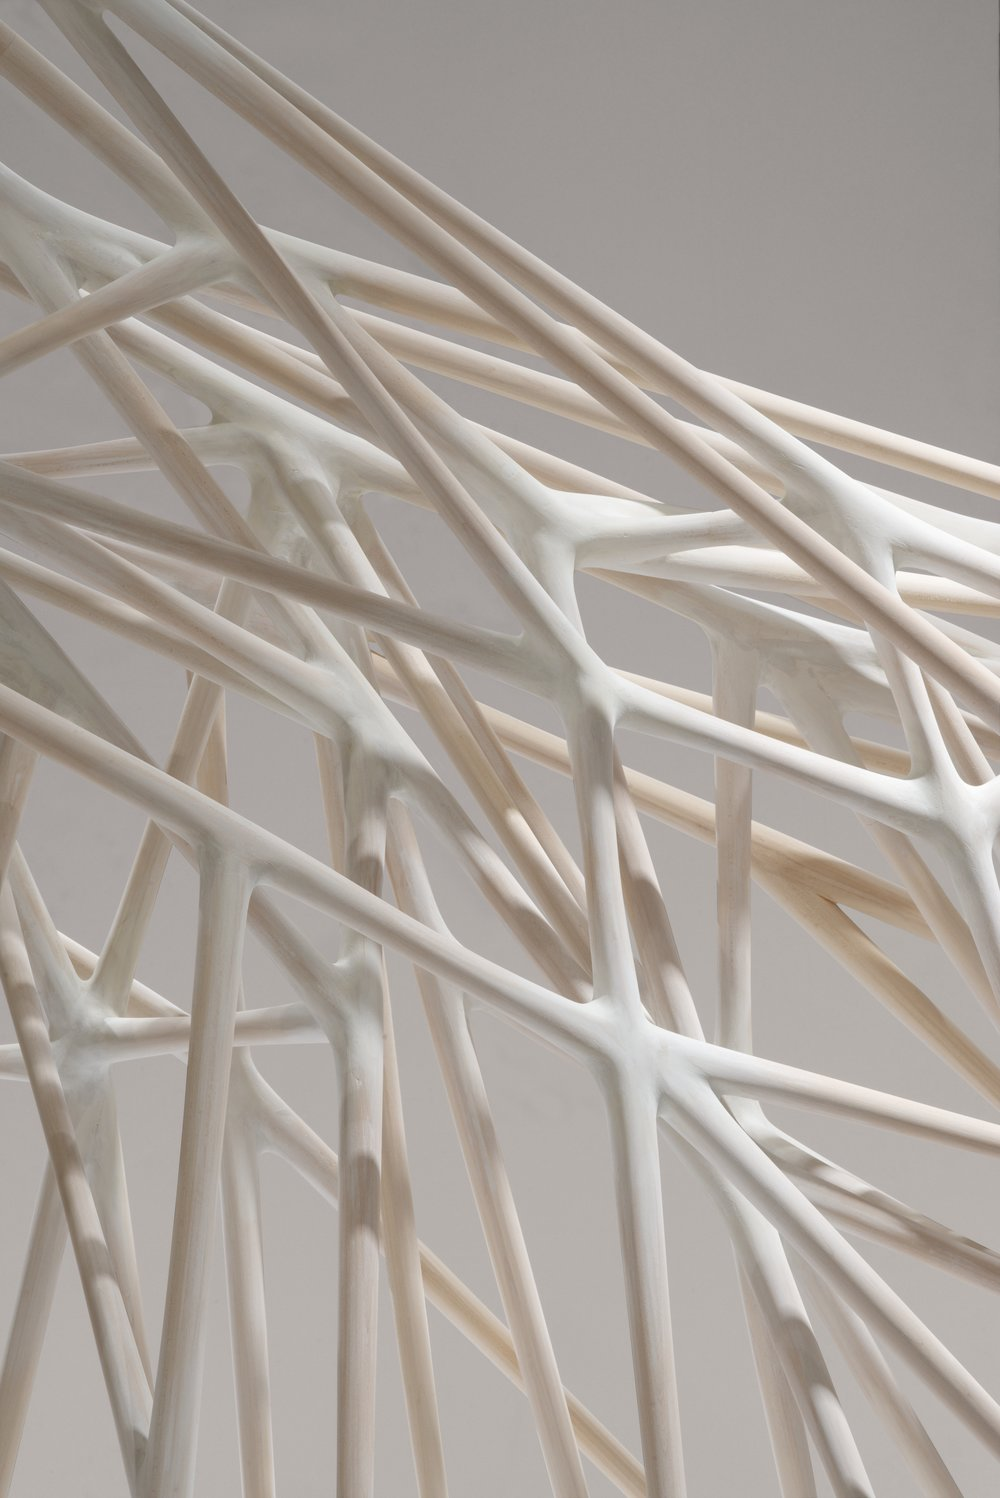 Christopher Kurtz,   Singularity , 2013 (detail). Hand carved basswood, milk paint. 81 x 144 w x 36 in. Courtesy of the Artist. 2016.CK.01.  Photo:  Patrik Argast  METHOD: Joined and hand carved from multiples of square stock basswood. Carved with chisels, gouges, knives, hand planes, spokeshaves and miniature violin makers carving tools